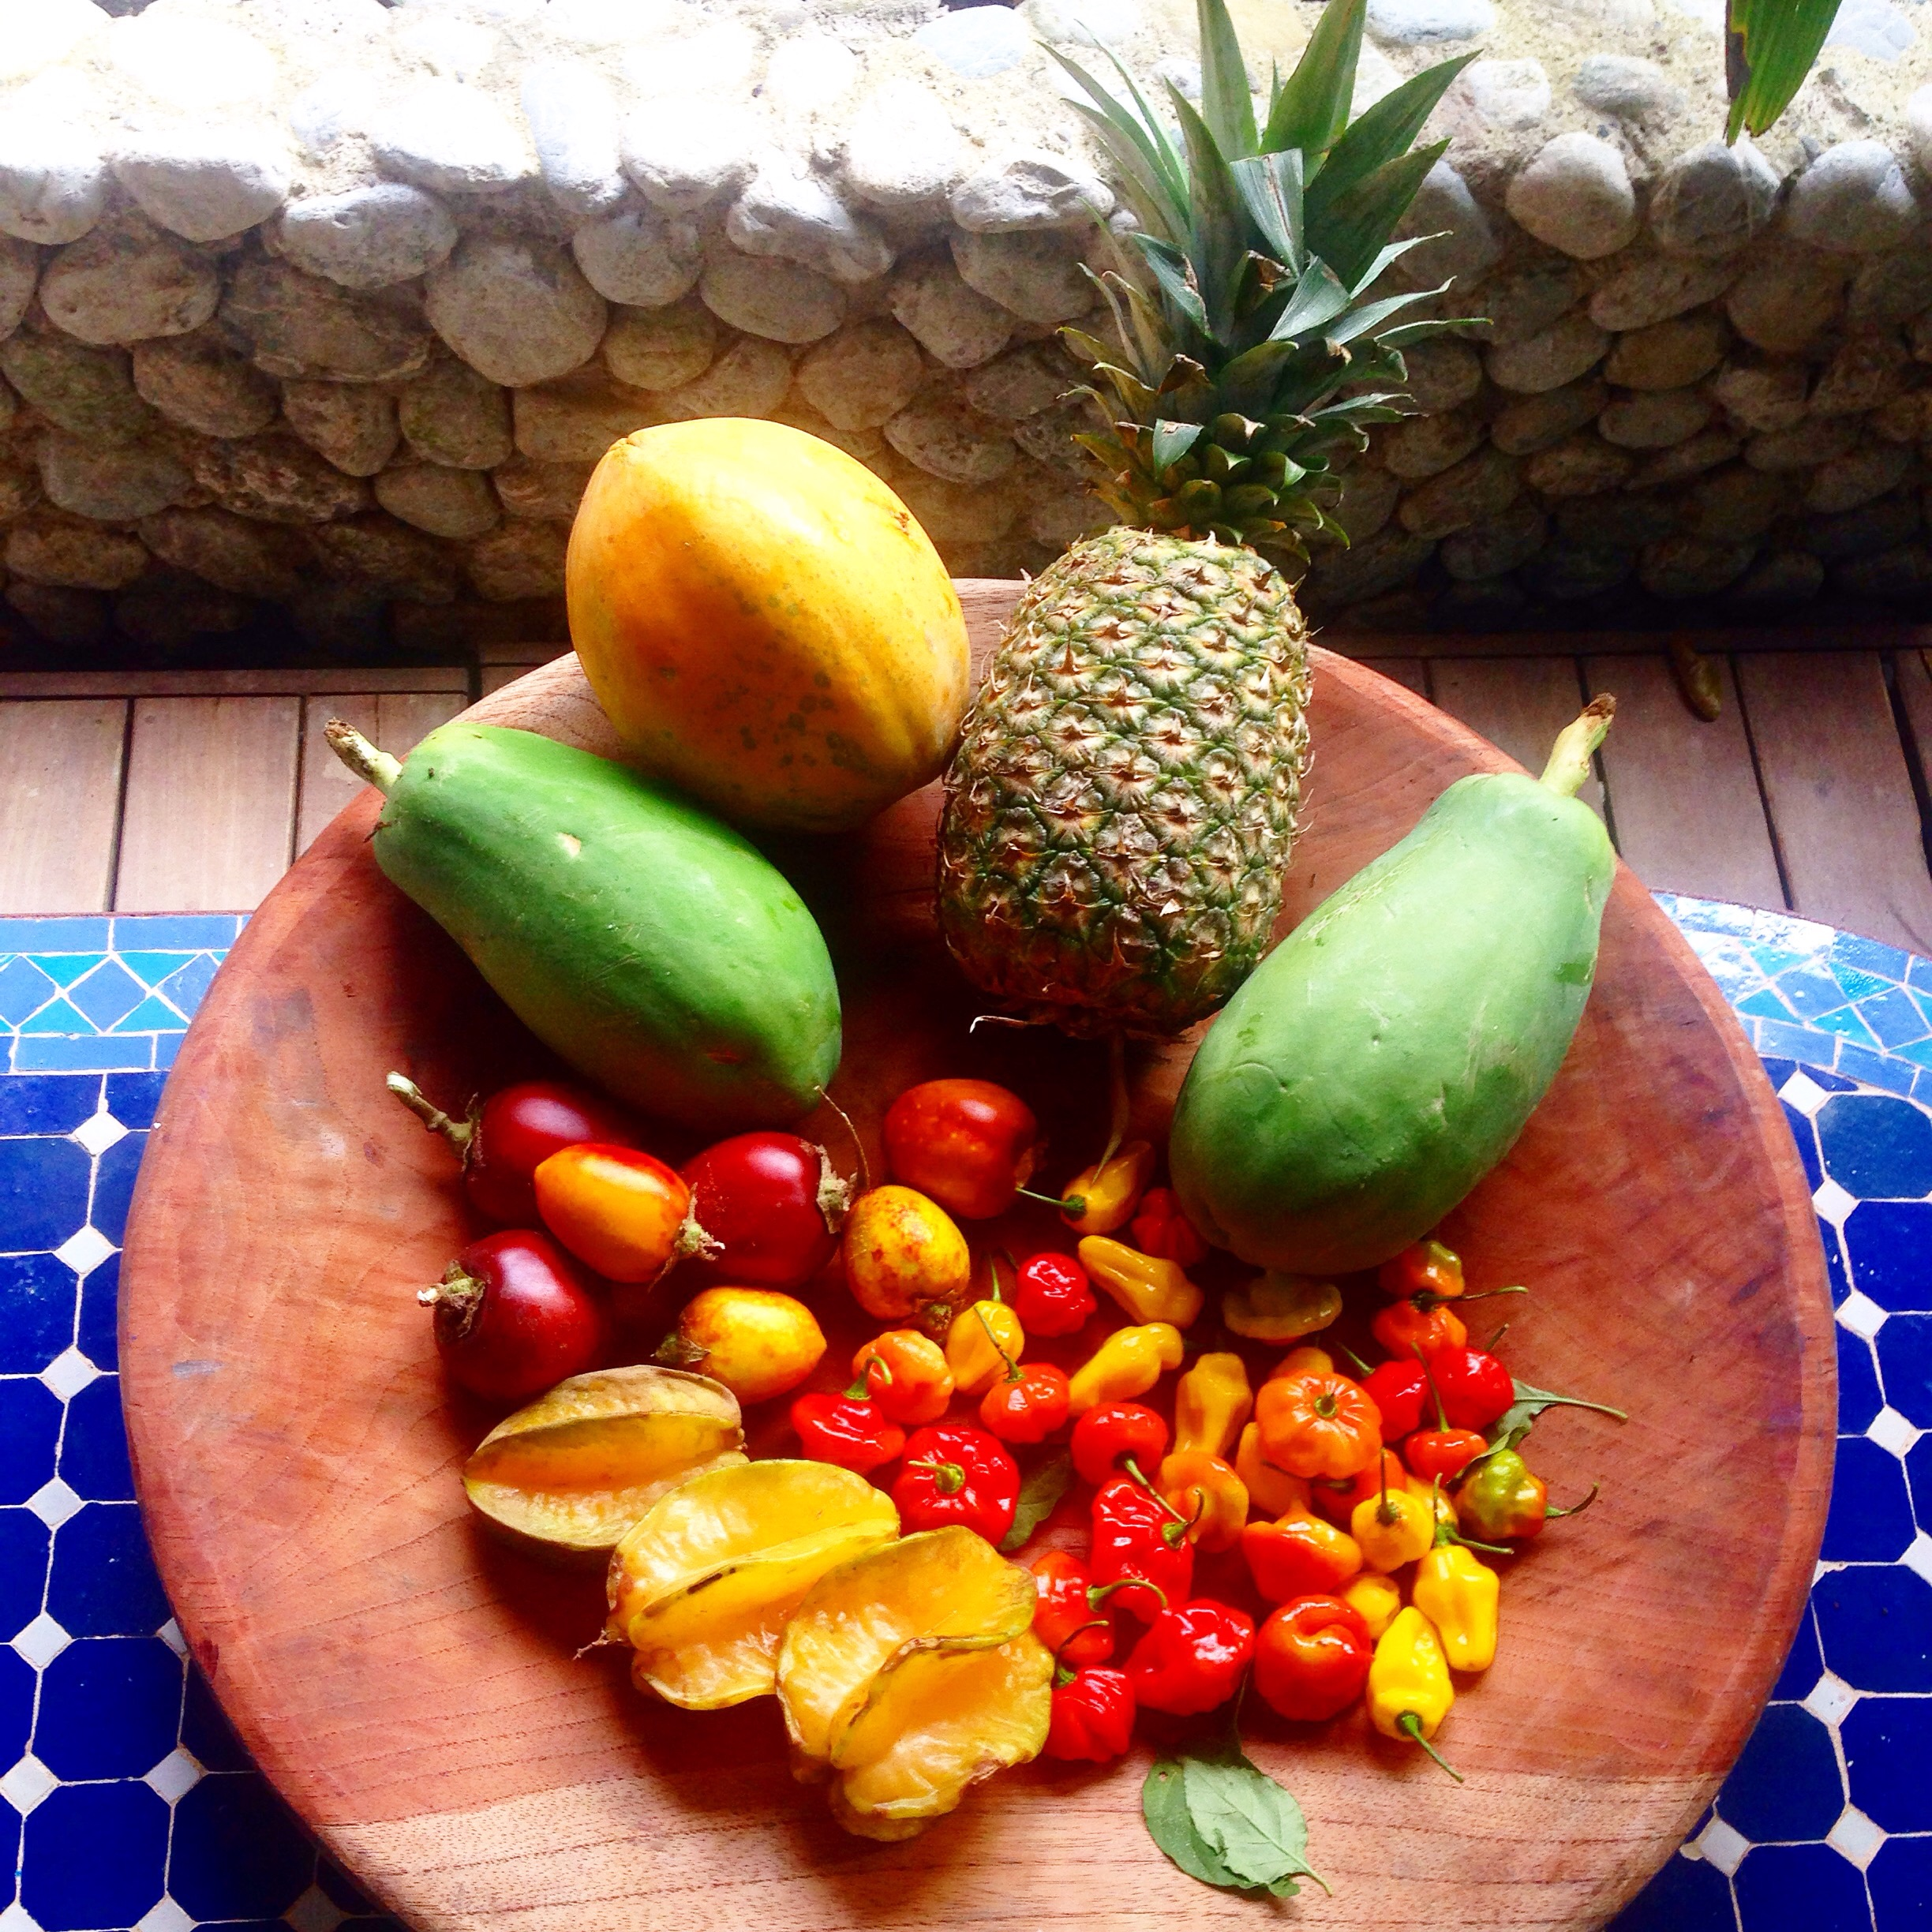 As usual, the fruit here is fresh and I have come to love starfruit everything. Yes, soup, dressing, and dessert.  Here are some cool items for the starfruit curious ...  For some reason, though, I haven't lost any weight with all of this healthy eating. -___-